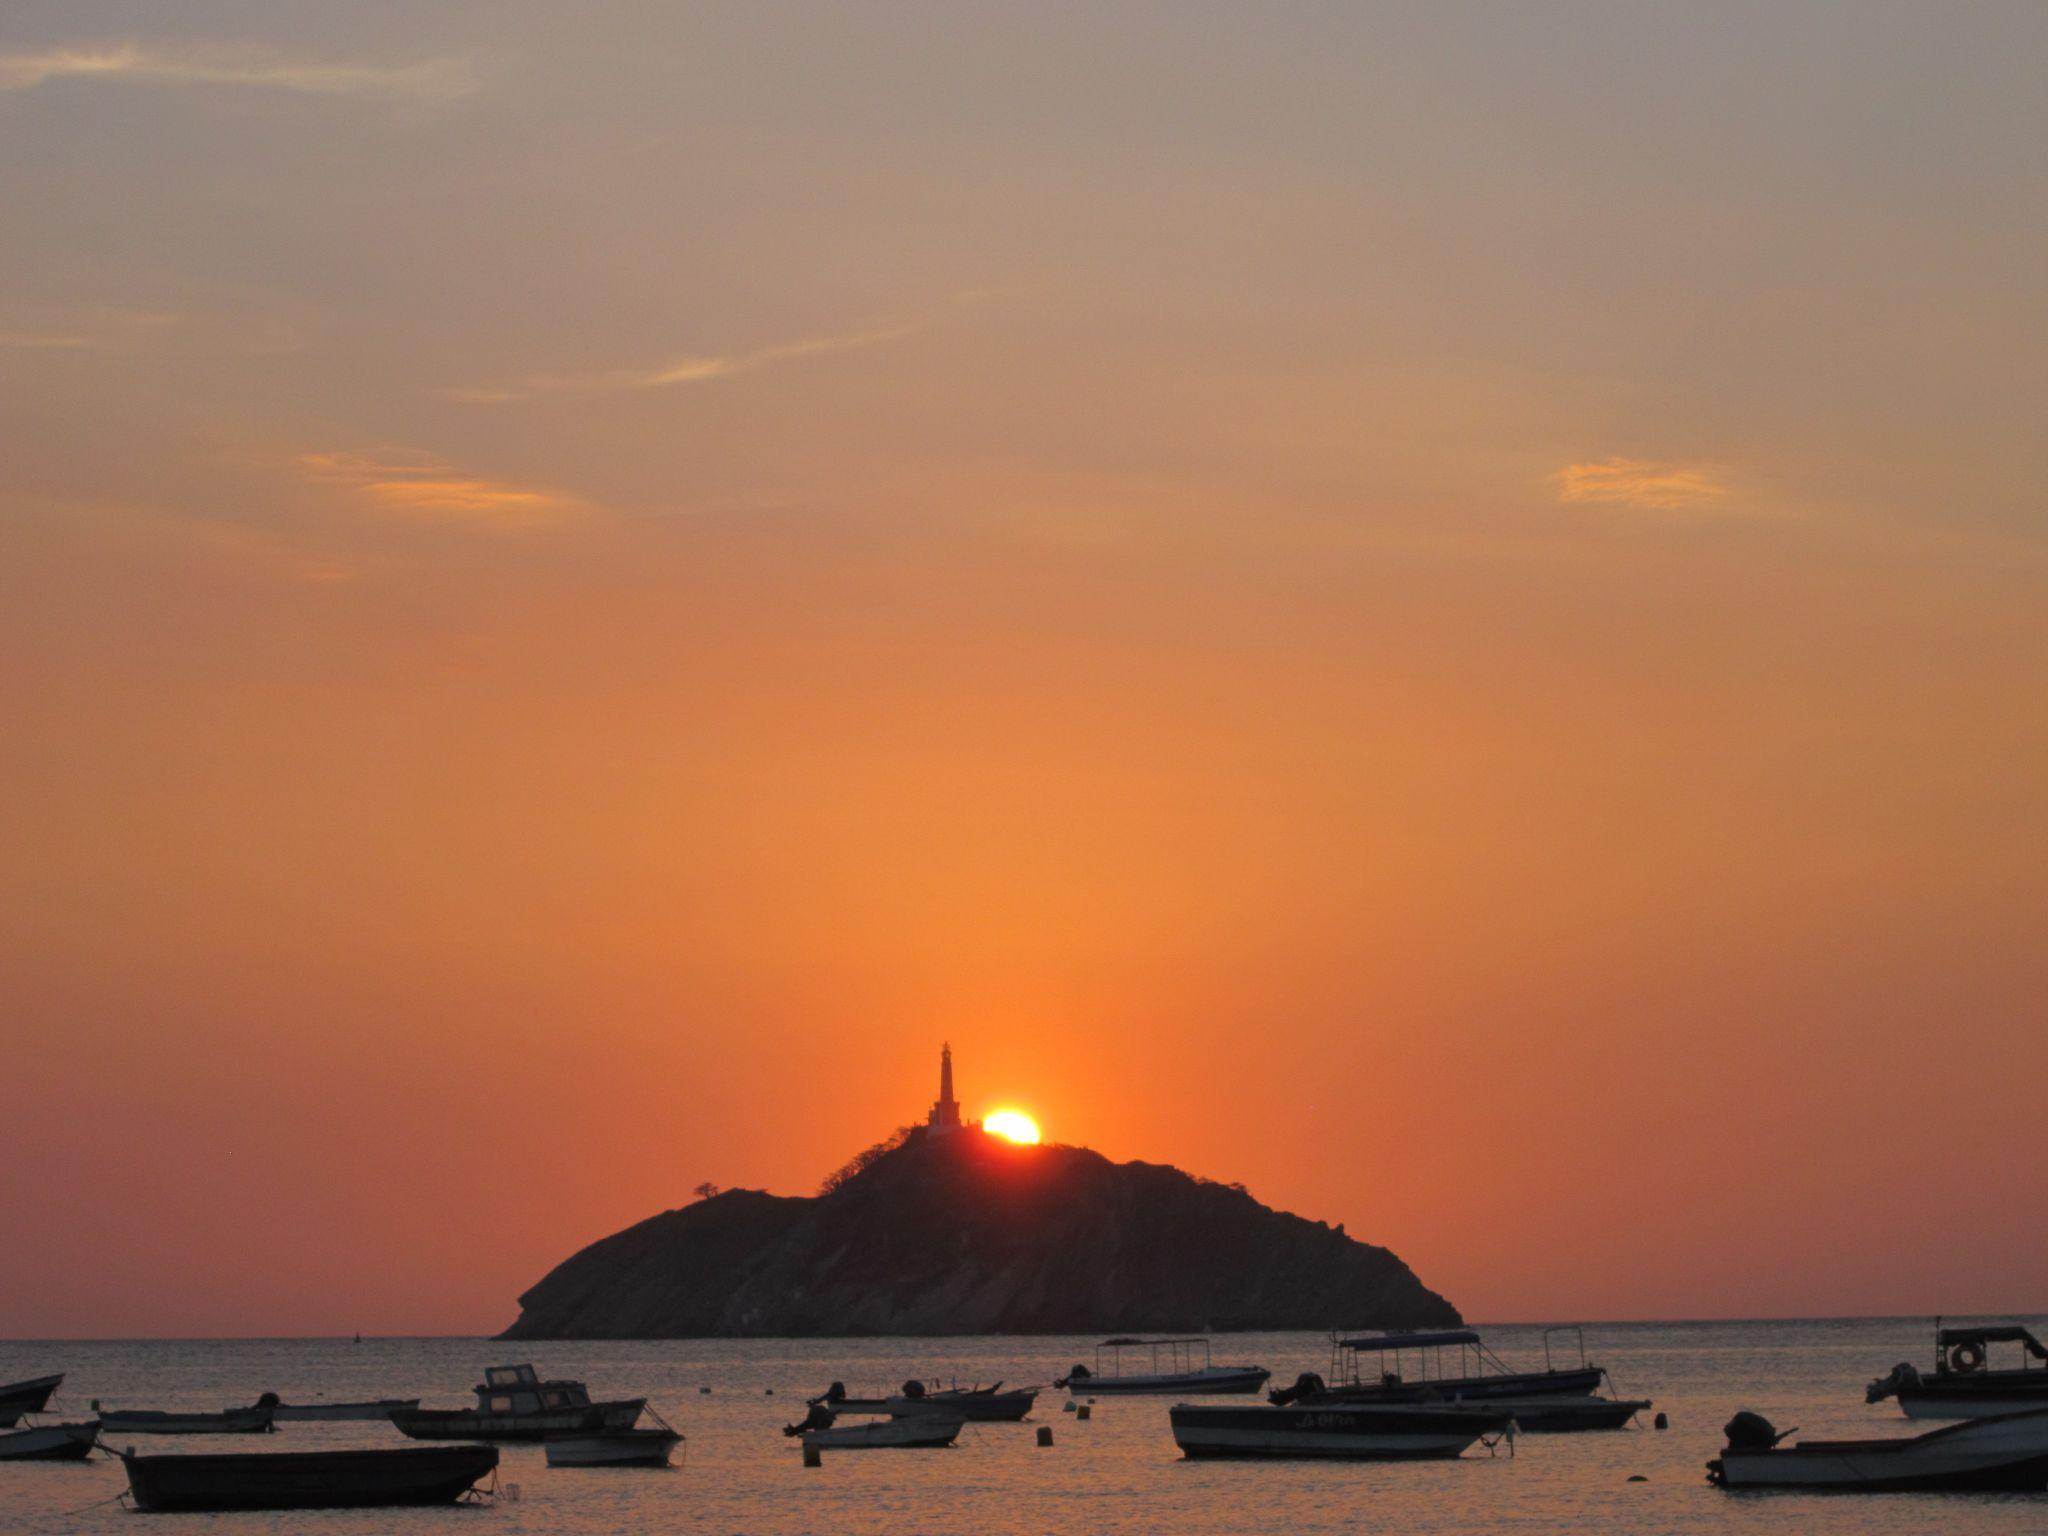 Santa Marta - Top 4 spots for photography